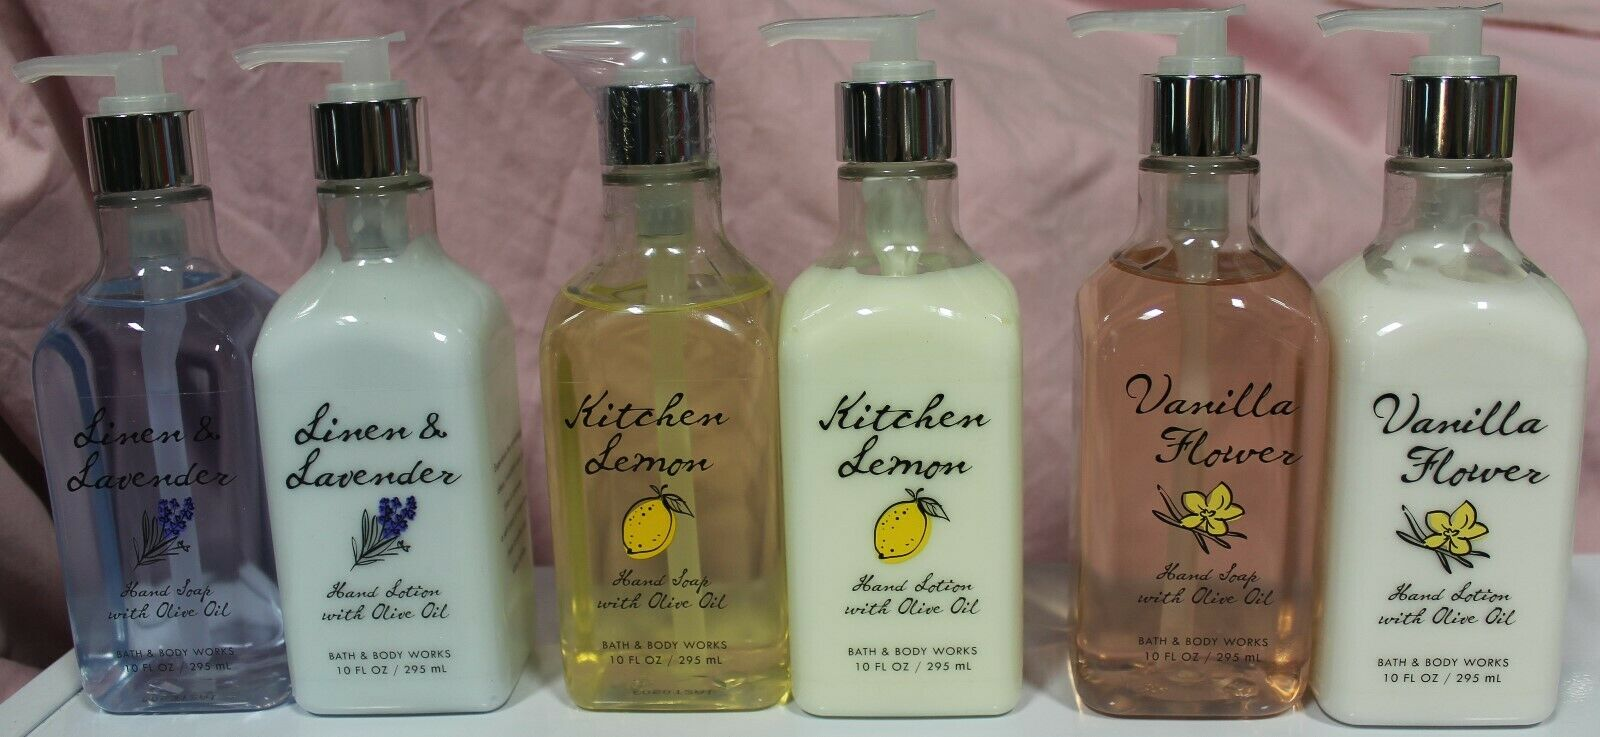 Bath & Body Works Combo Olive Oil Kitchen Lemon Linen & Lavender Vanilla Flower